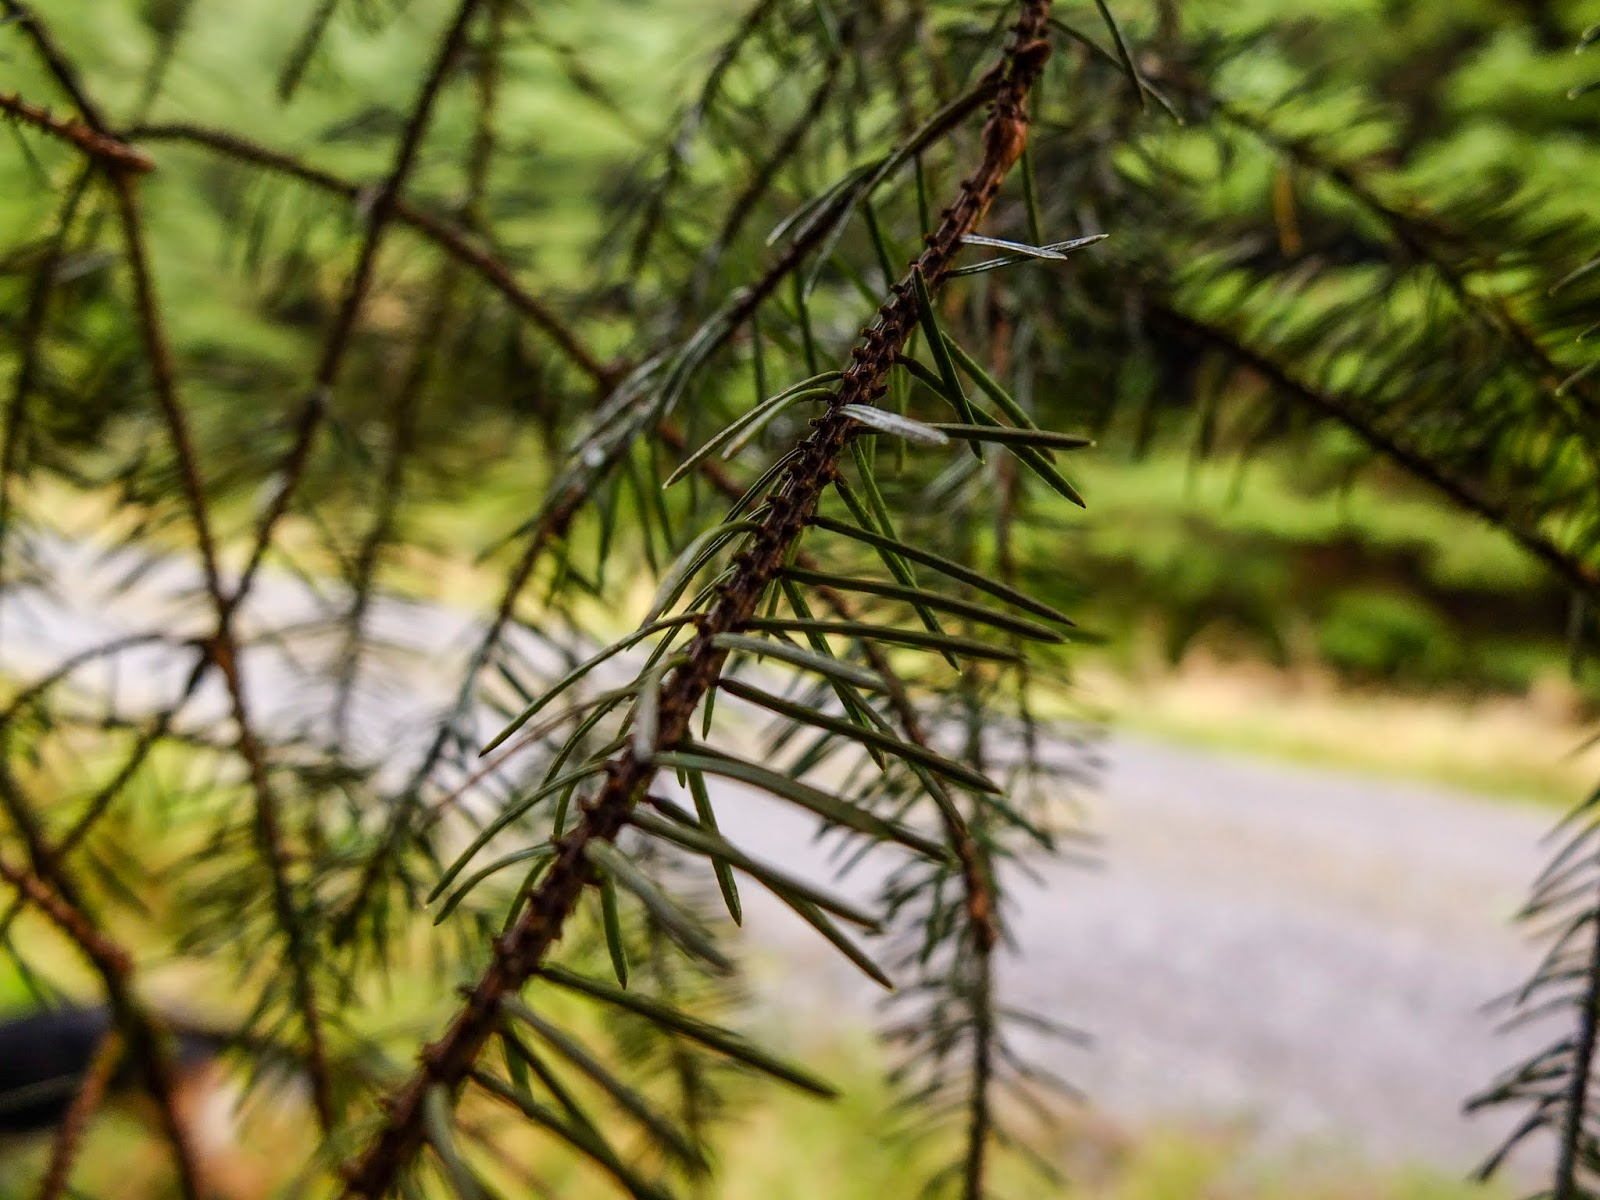 A close up of pine needles on branches inside a forest.